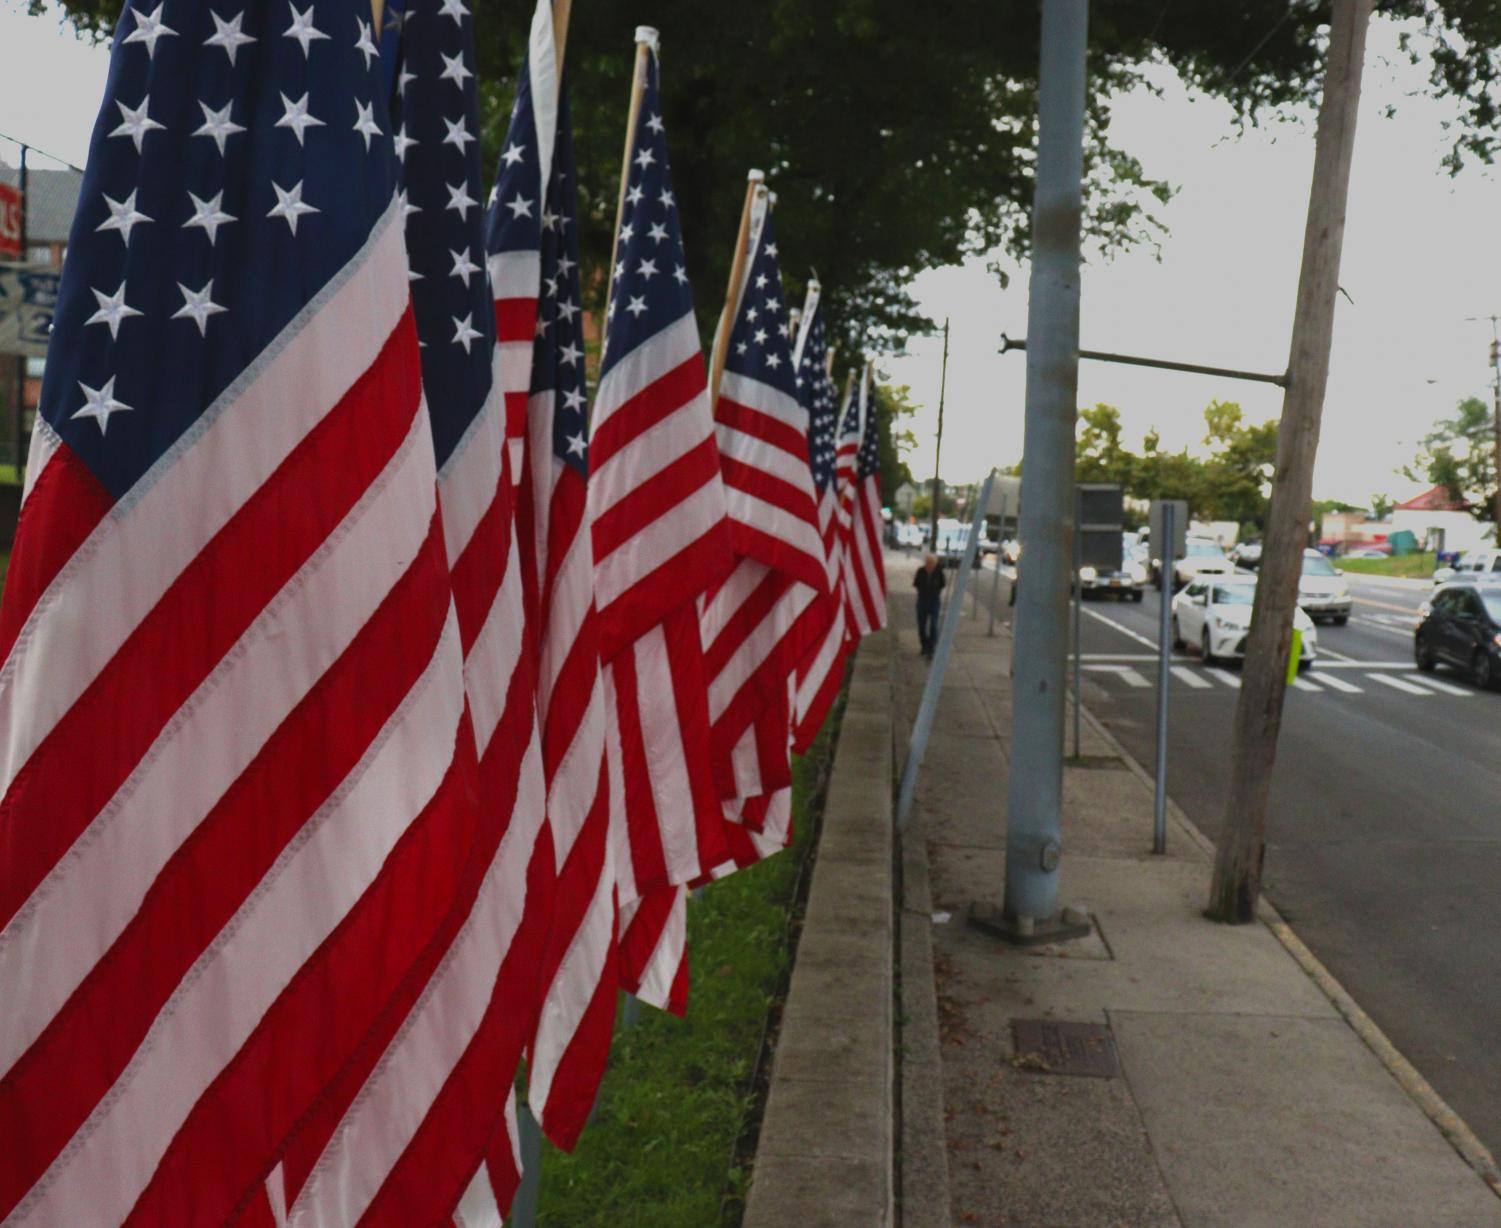 The flags set up by the American Heroes Club are meant to honor those who passed in the tragedy of 9/11, and also represent pride for the United States.